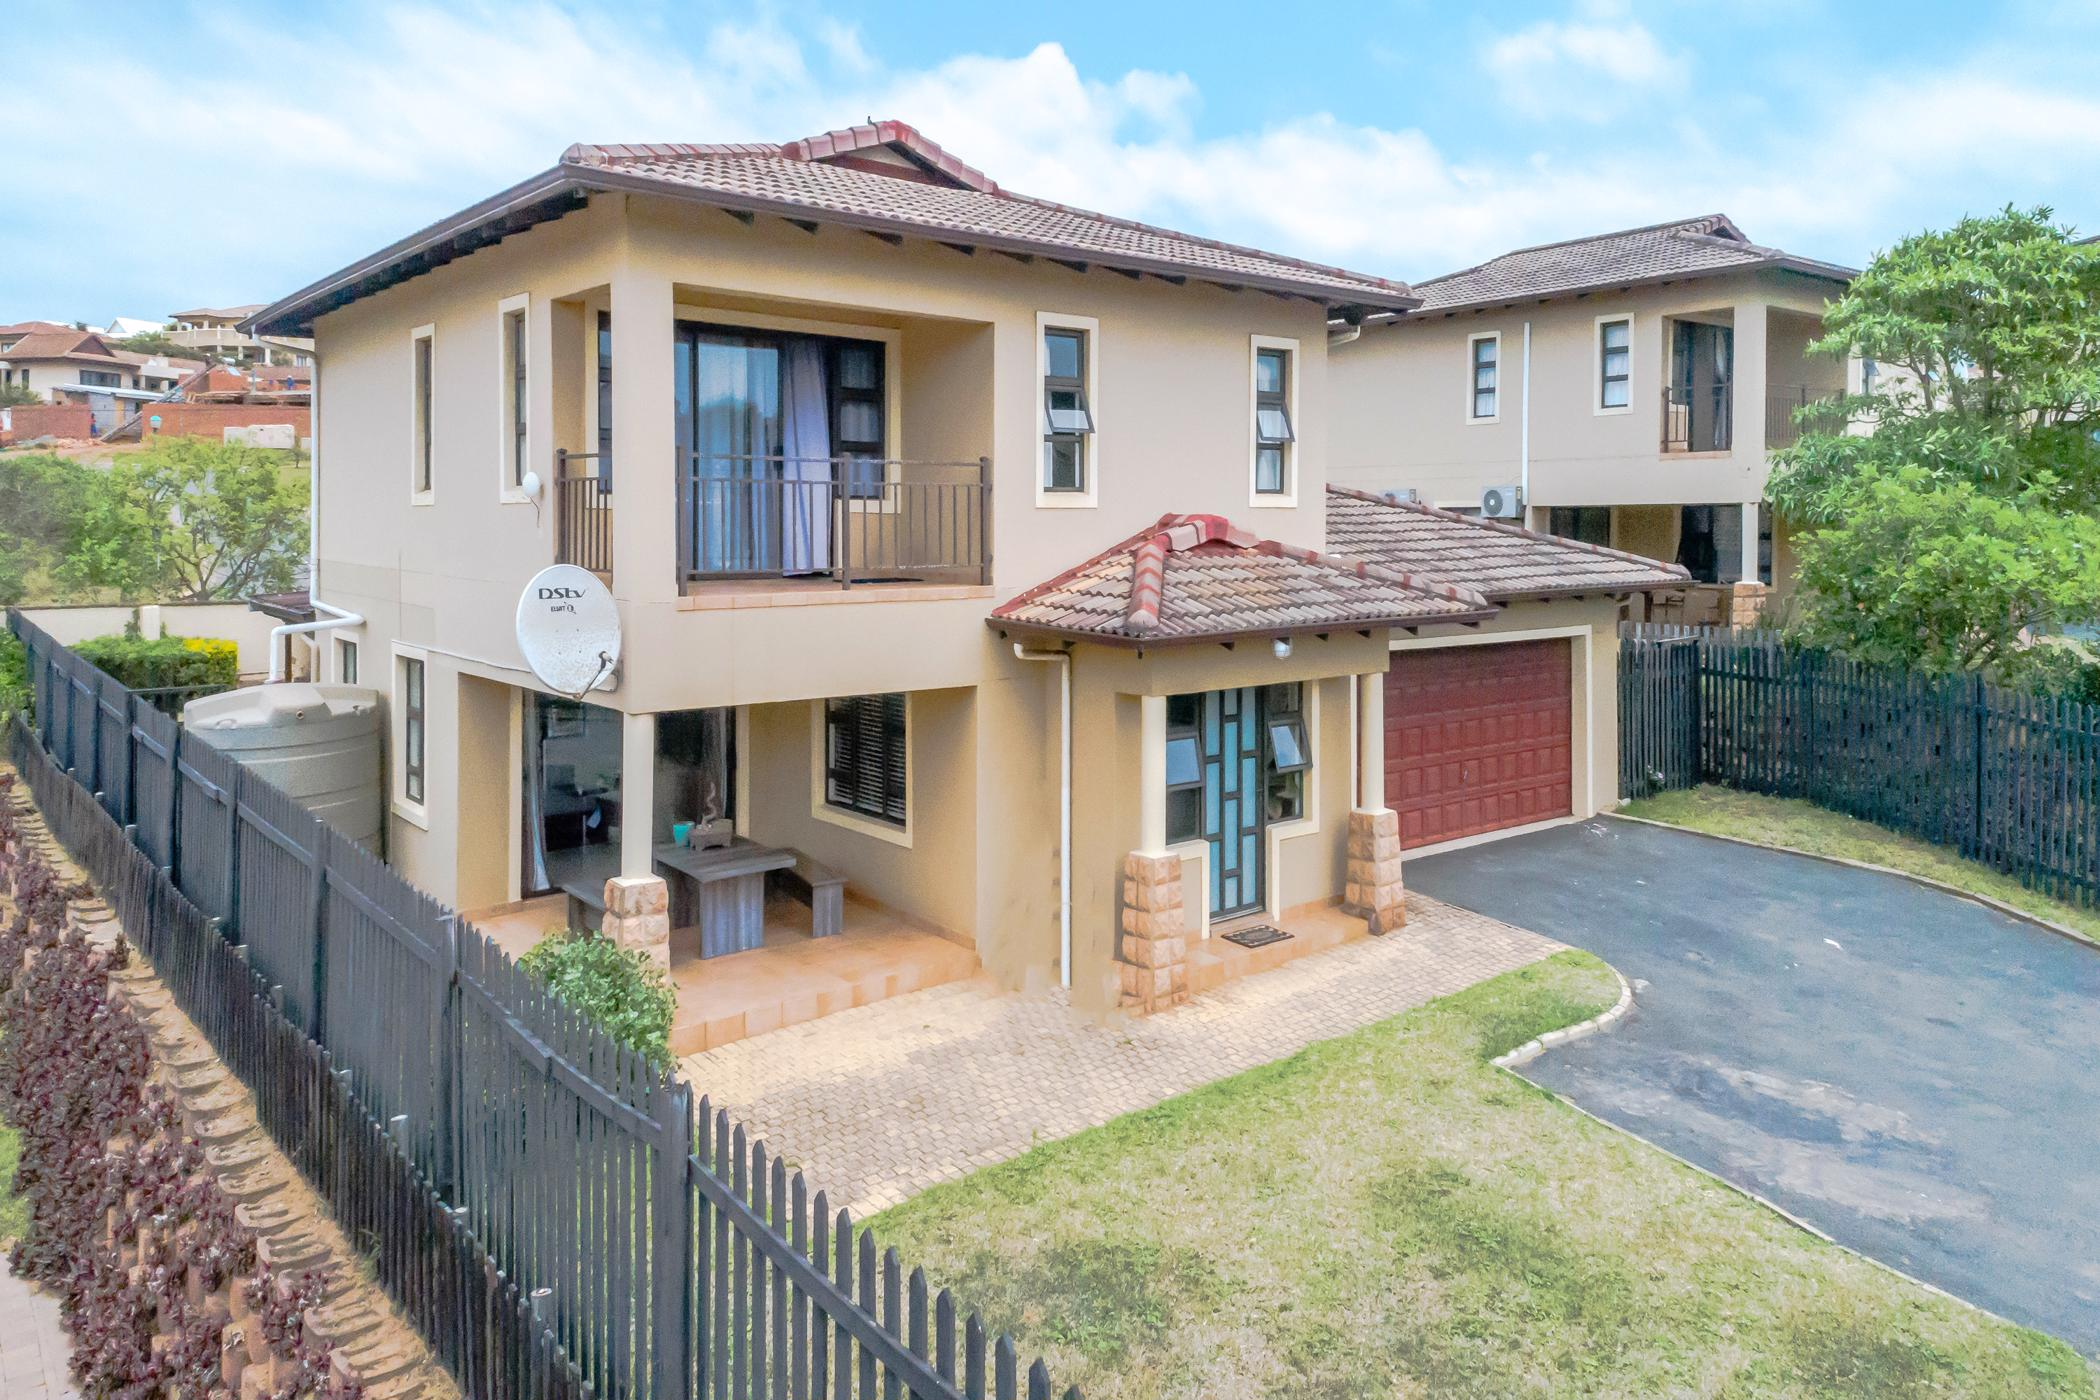 4 Bedroom House For Sale In Sheffield Beach R3200000